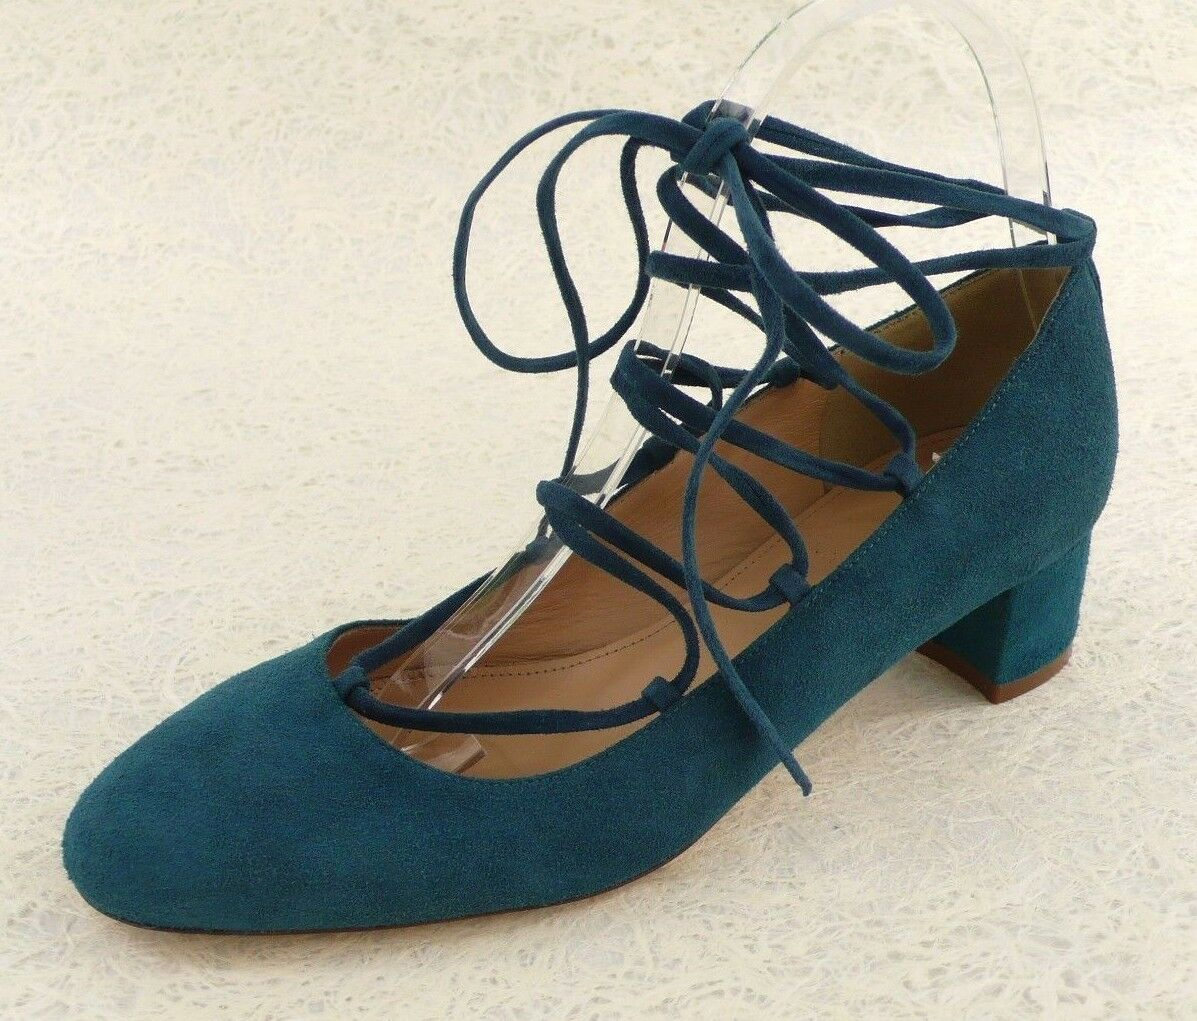 NEW J. CREW Retail  218 KID SUEDE LACE-UP LOW HEELS in TEAL Size 7 Made in ITALY